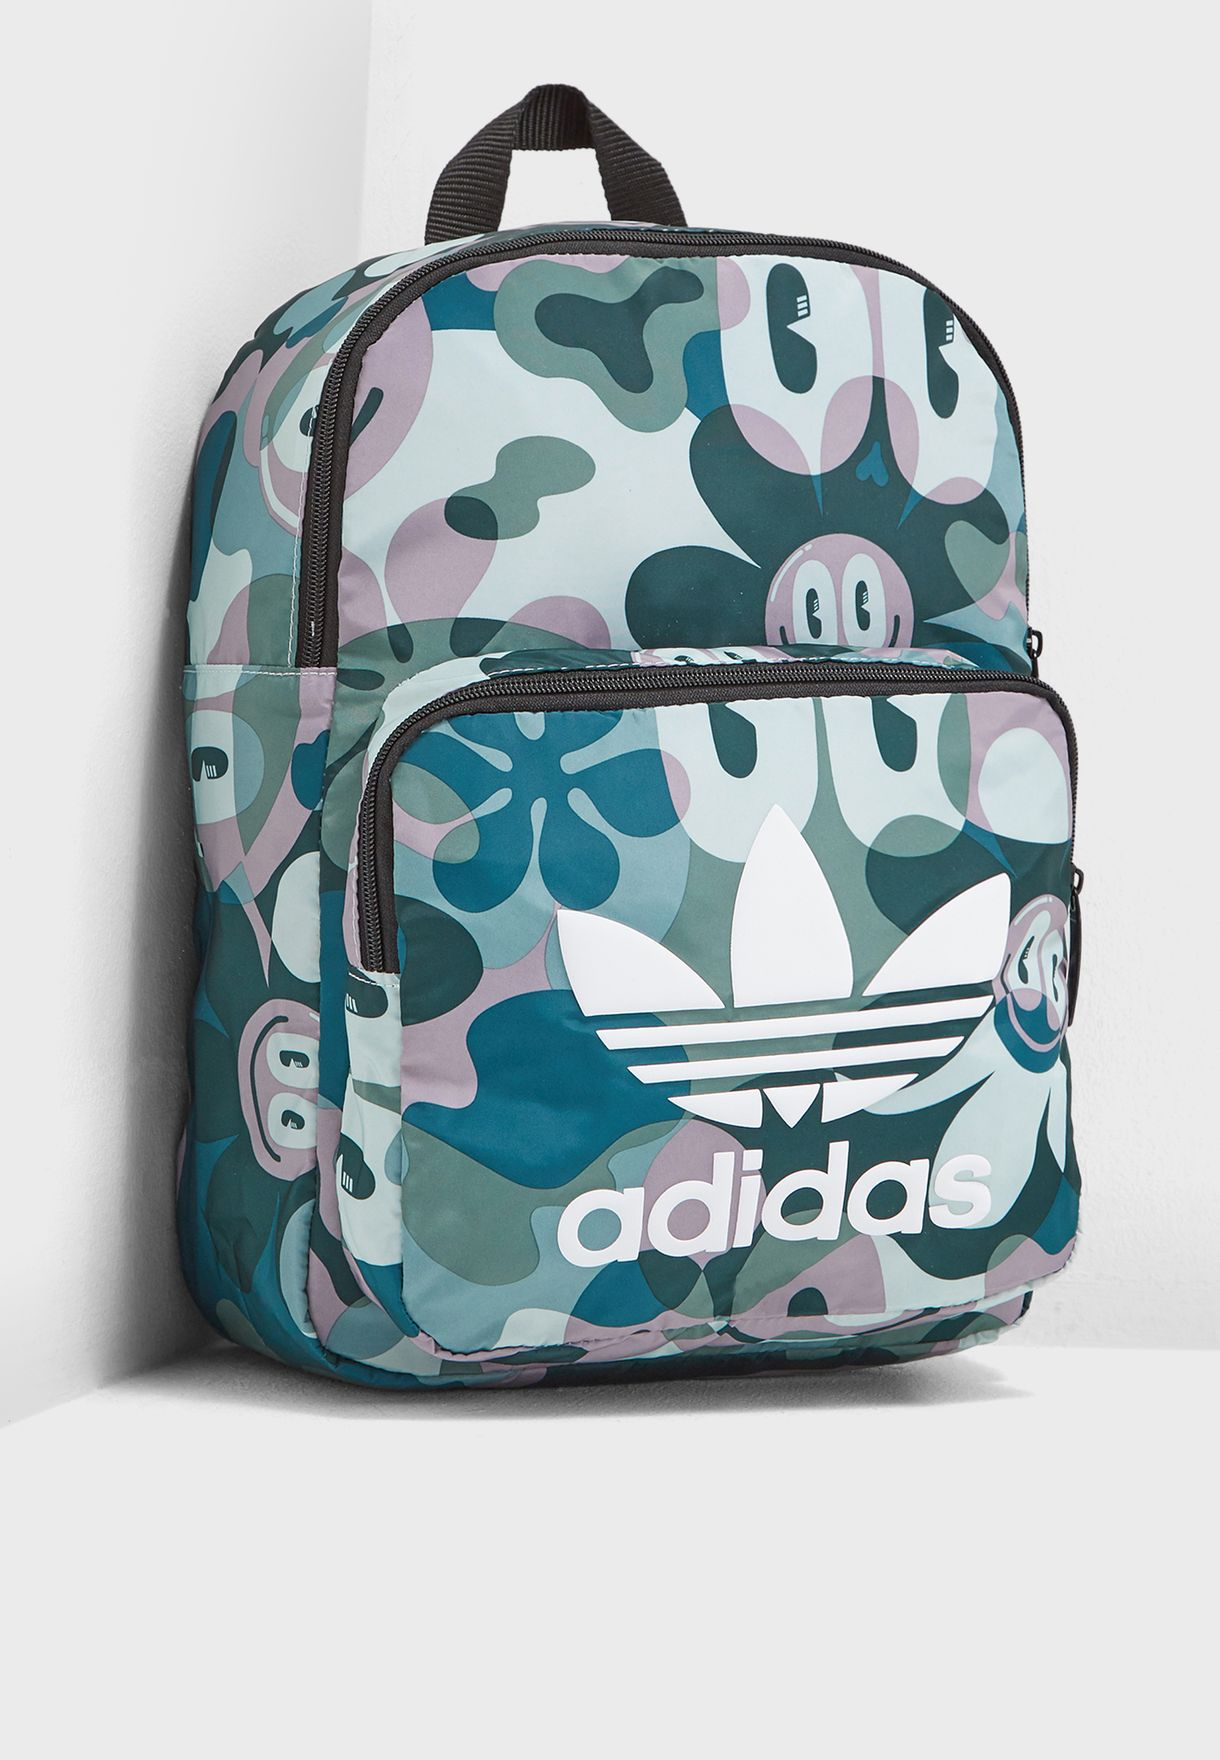 c75382697c Shop adidas Originals prints Classic Graphic Backpack DW6718 for ...